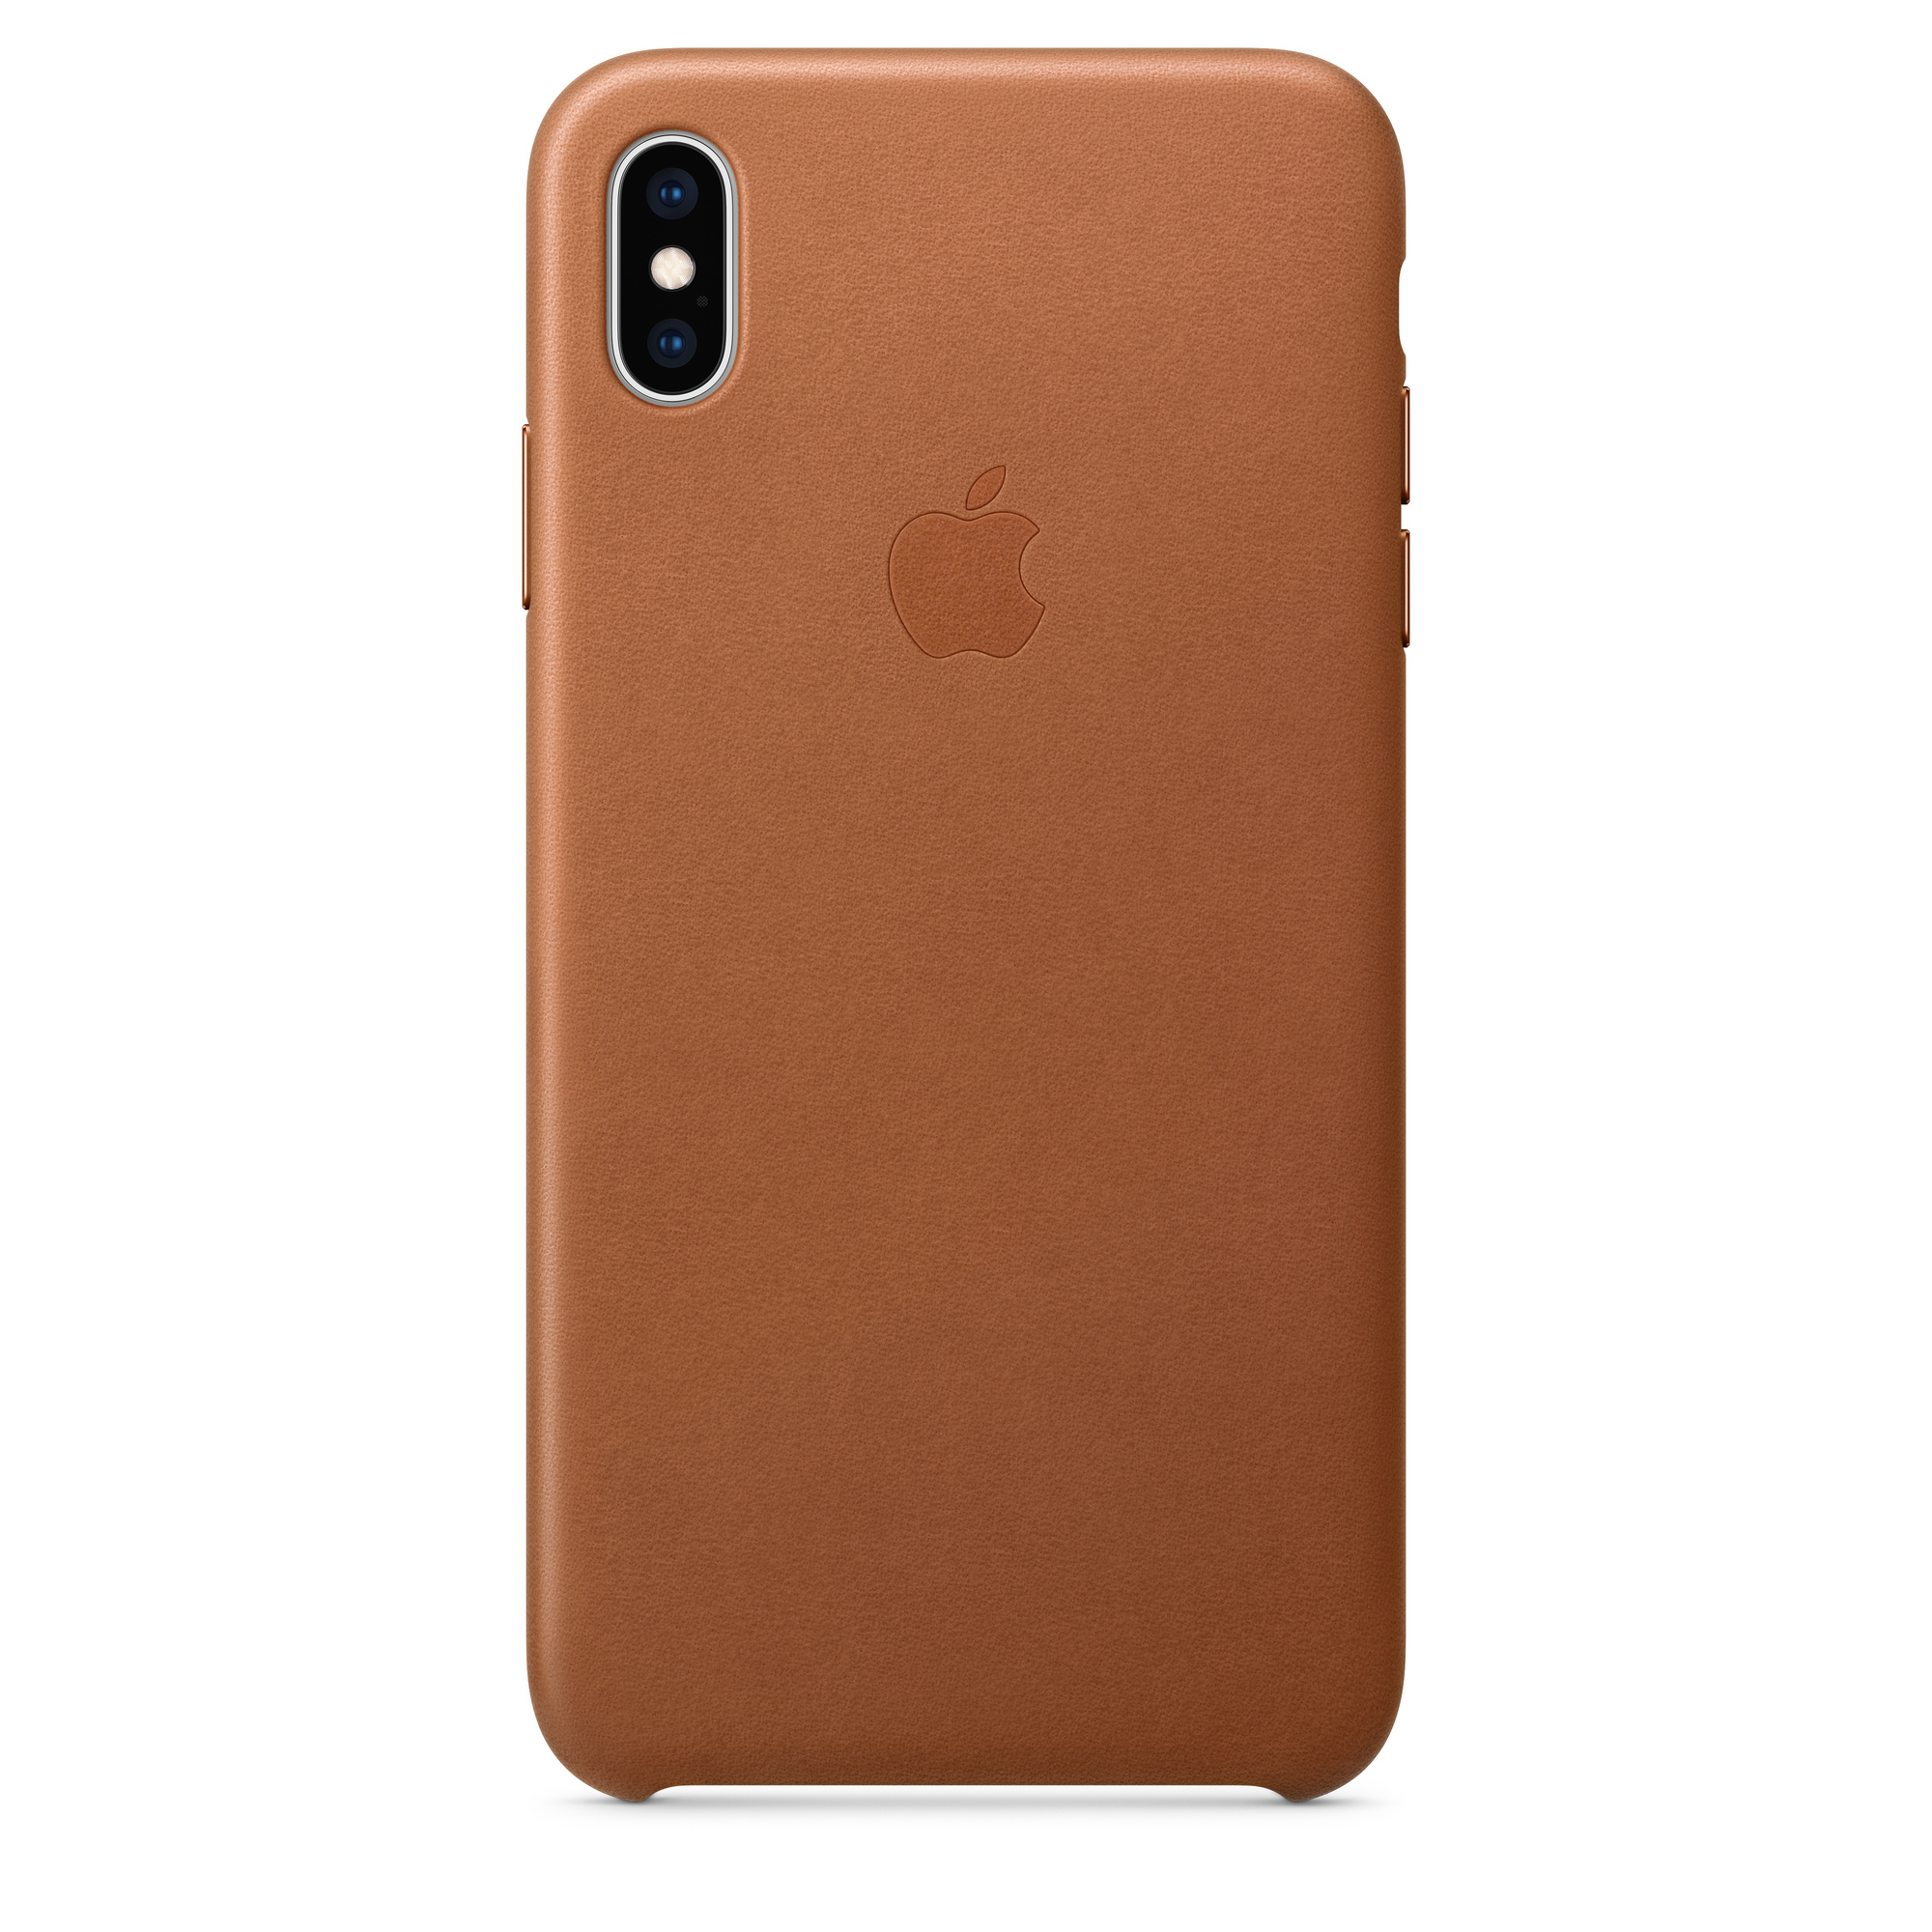 cheap for discount 16eba fe0f6 iPhone XS Max Leather Case - Saddle Brown